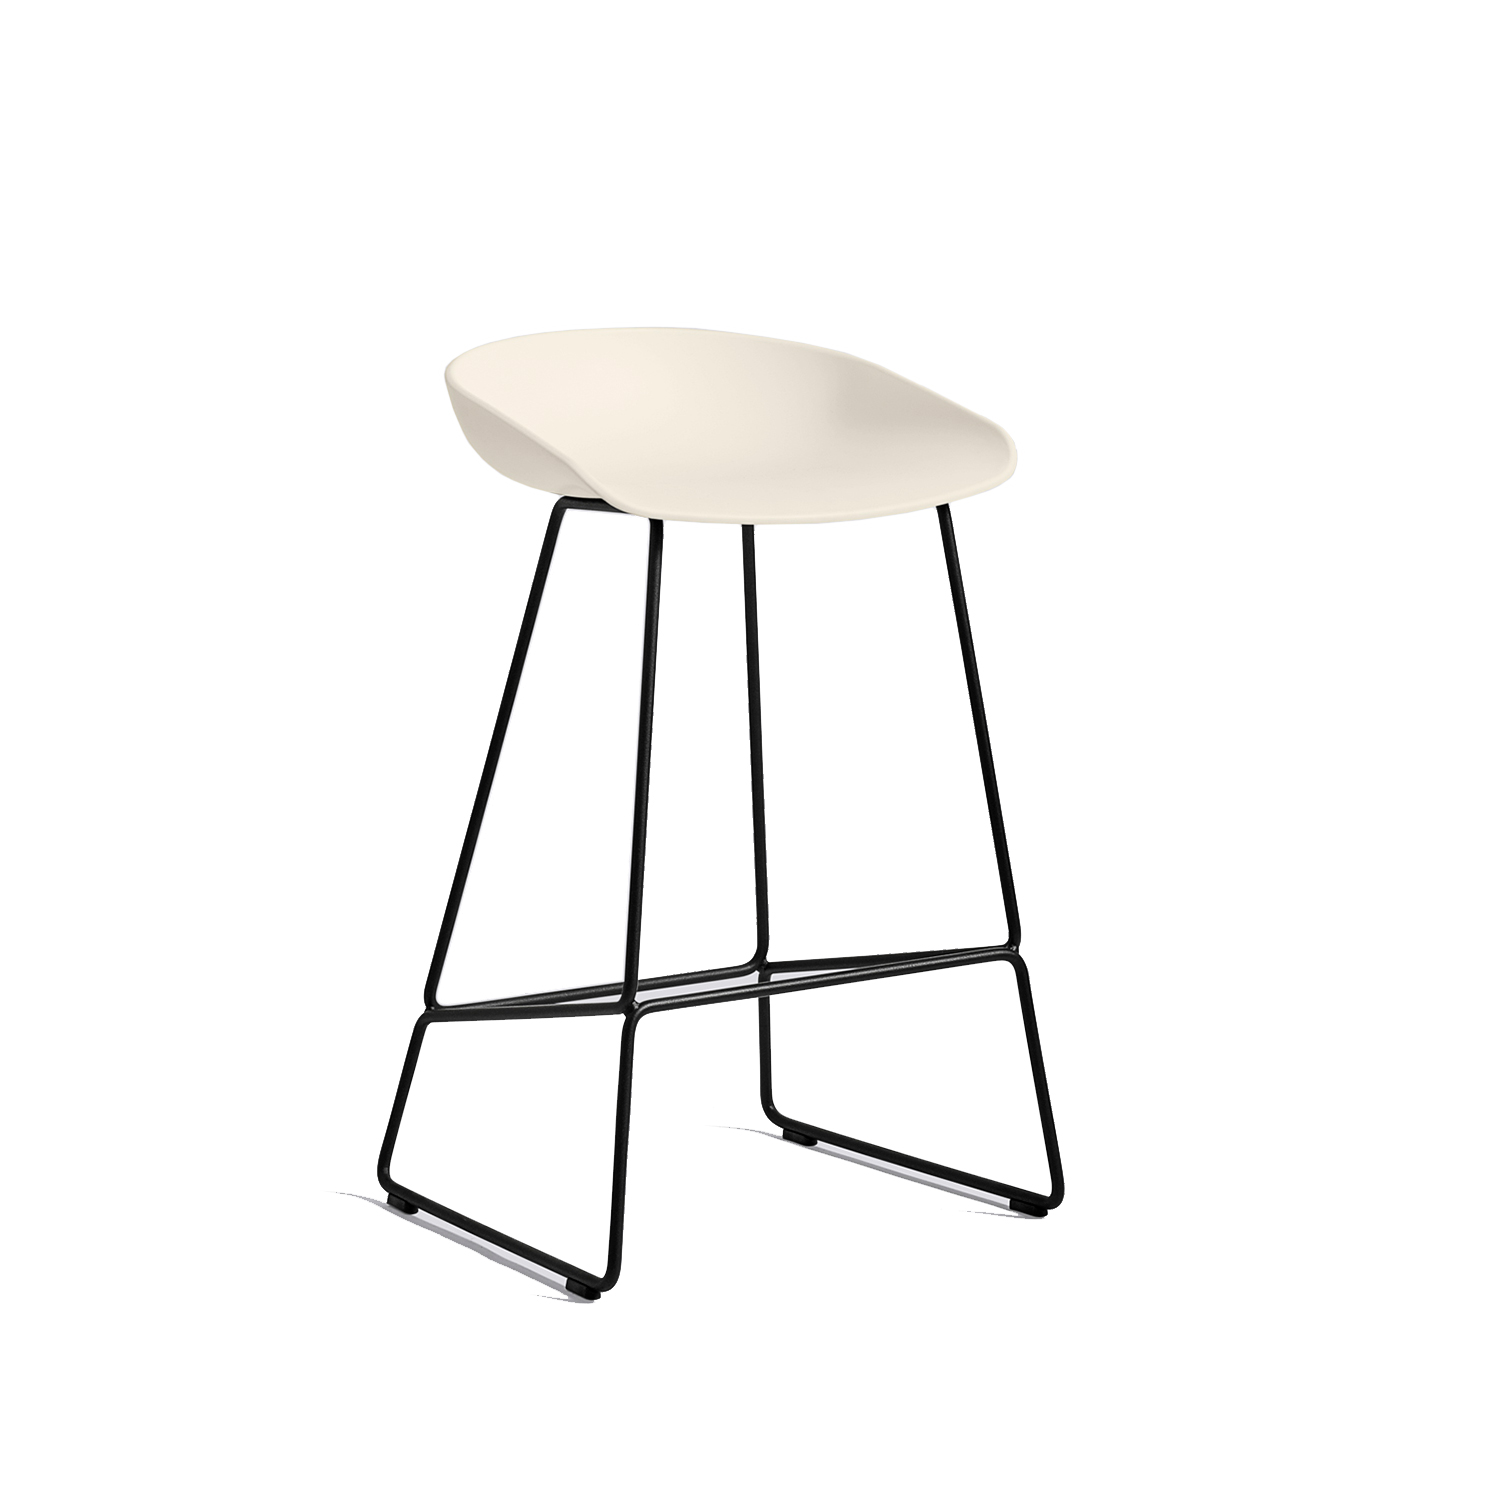 Hay-About A Stool 38 Barstol H65, Cream White/Sort